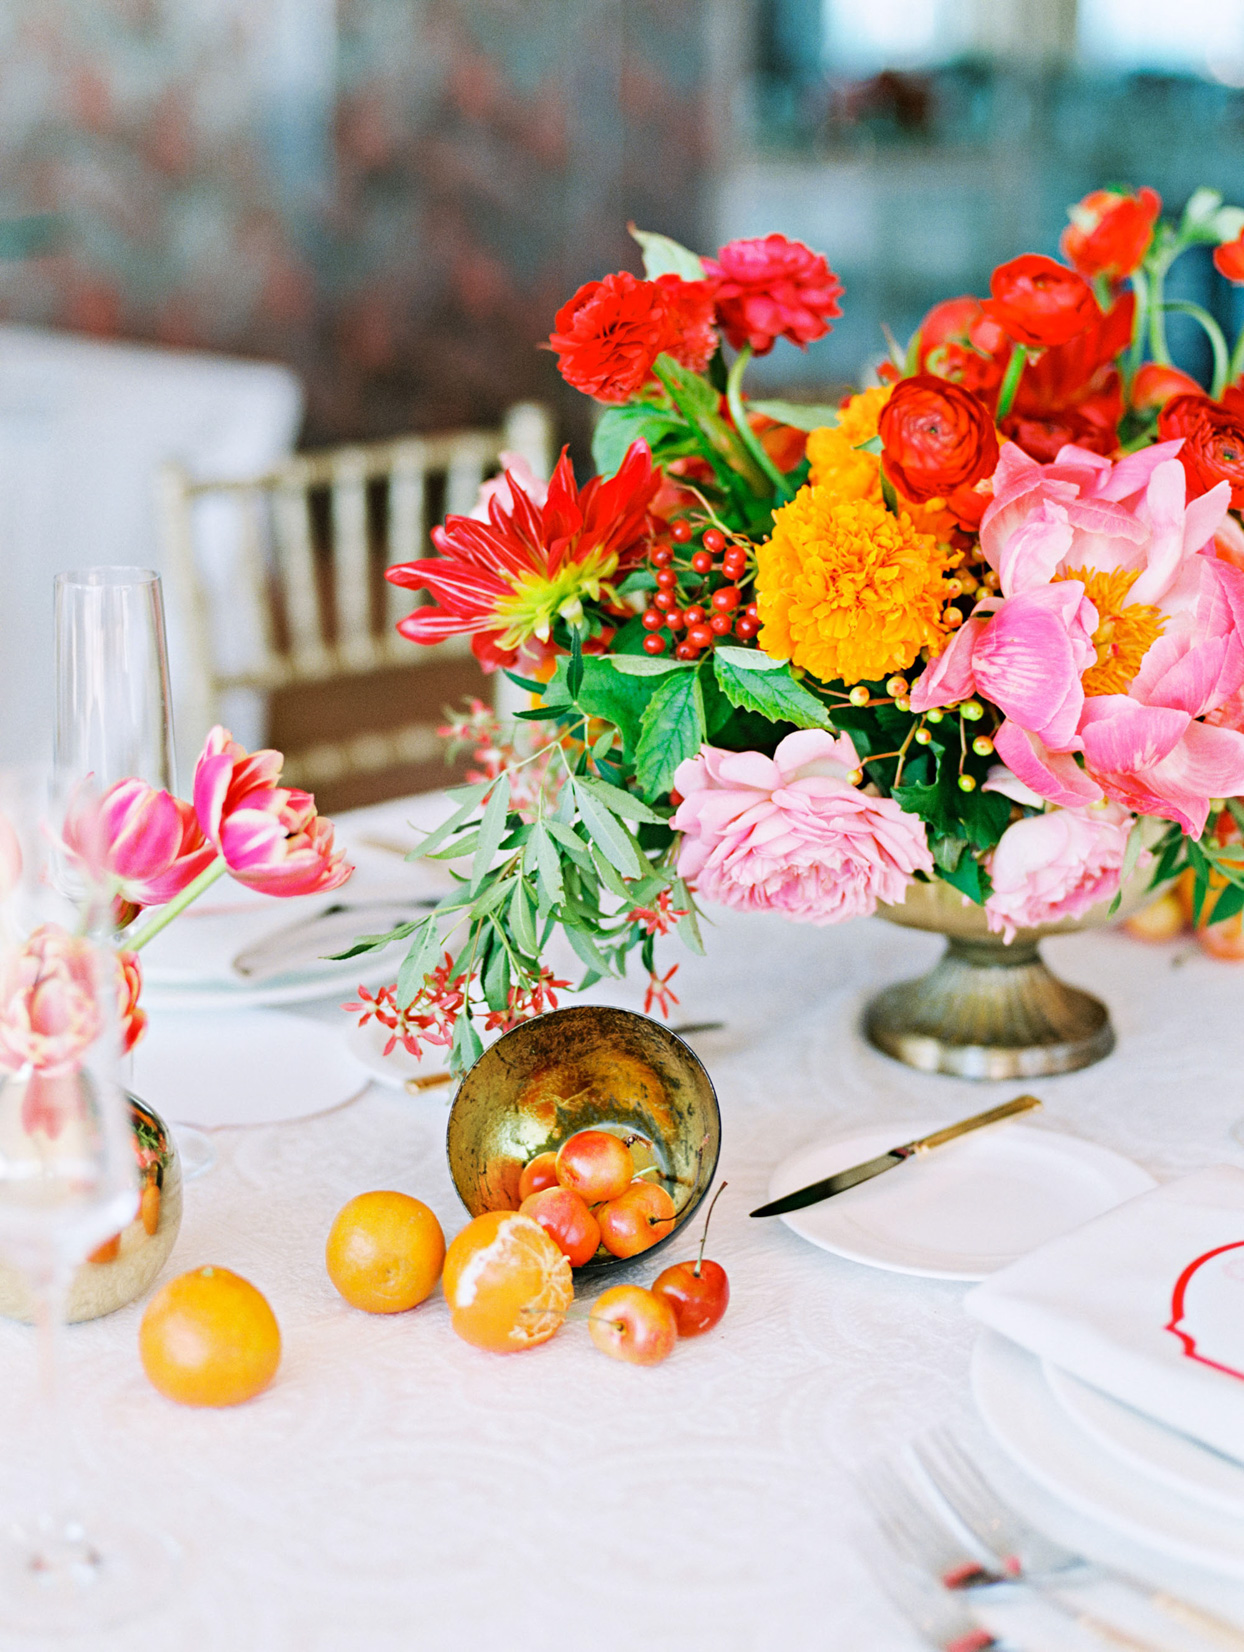 Centerpiece with dahlias, roses, marigolds, ranunculus, berries, snapdragons, and fruit